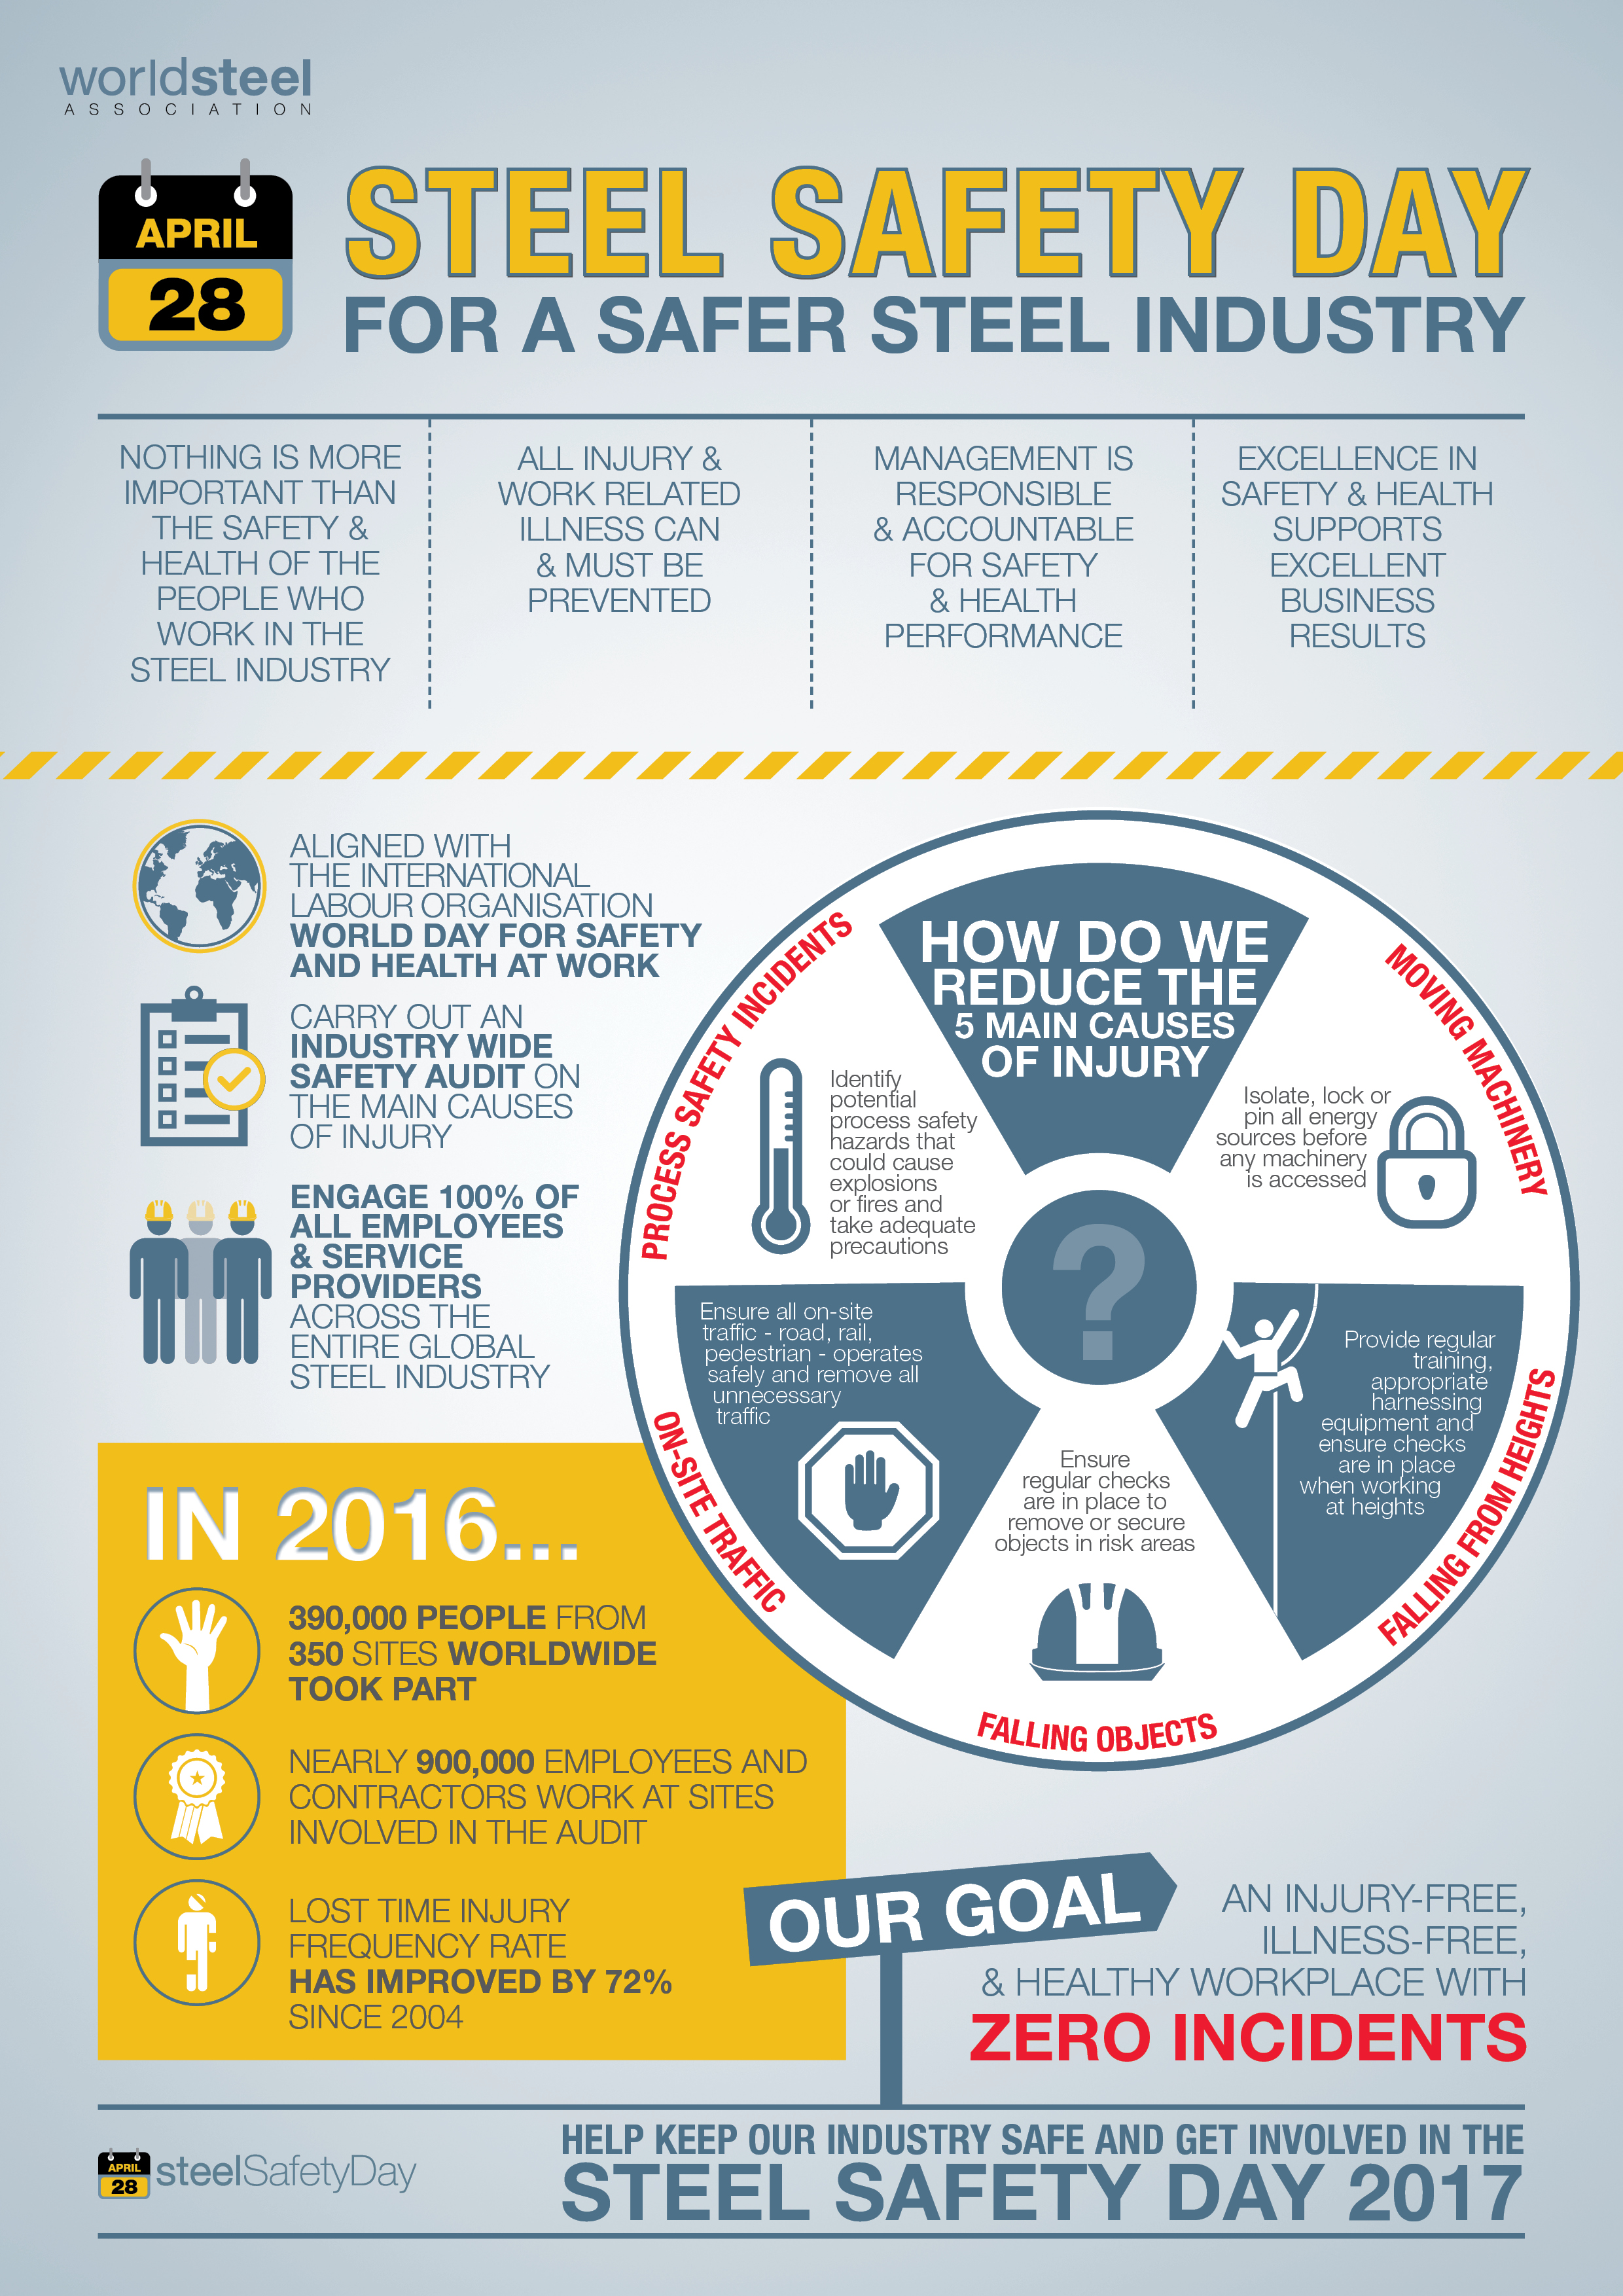 2017 Steel Safety Day Infographic (World Steel Association)